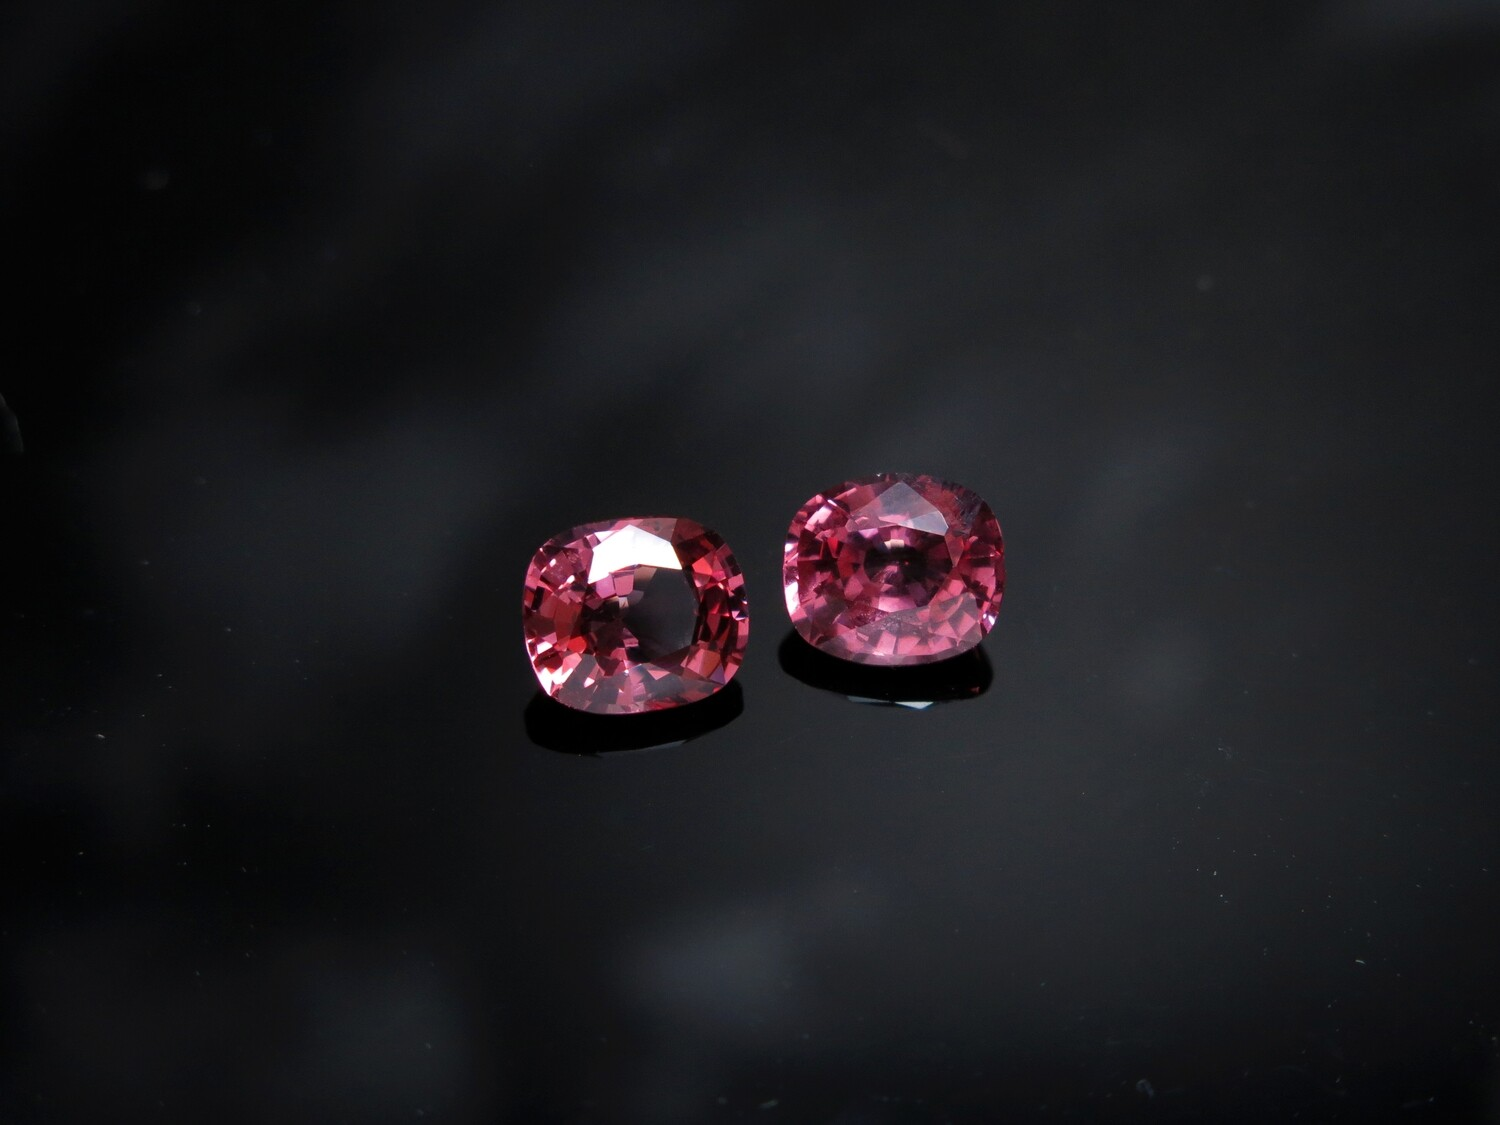 Spinel Cushion cut pair 0.93 ct and 0.95 ct